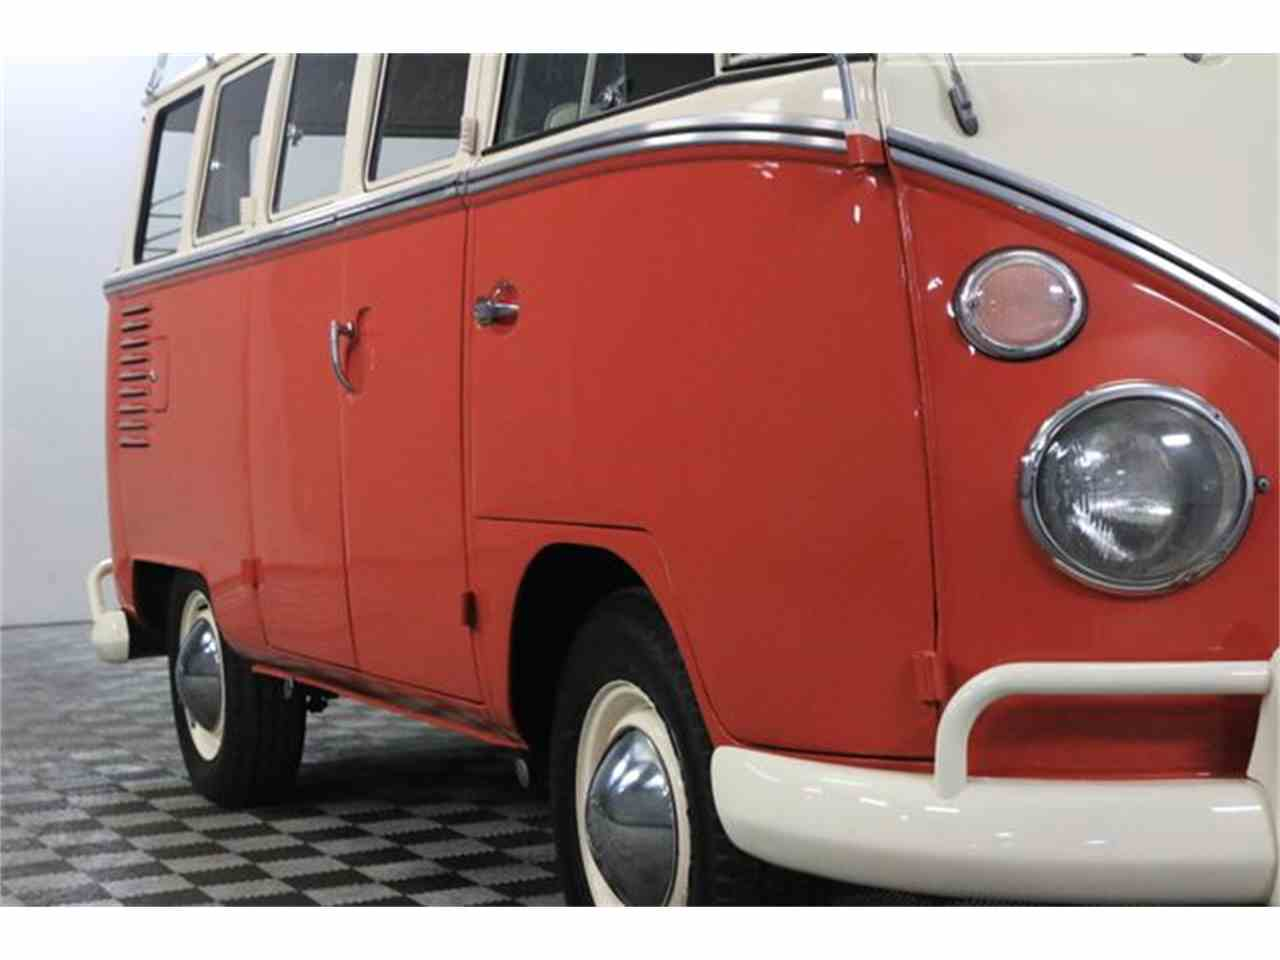 1963 volkswagen 23 window microbus for sale classiccars for 1963 vw 23 window bus